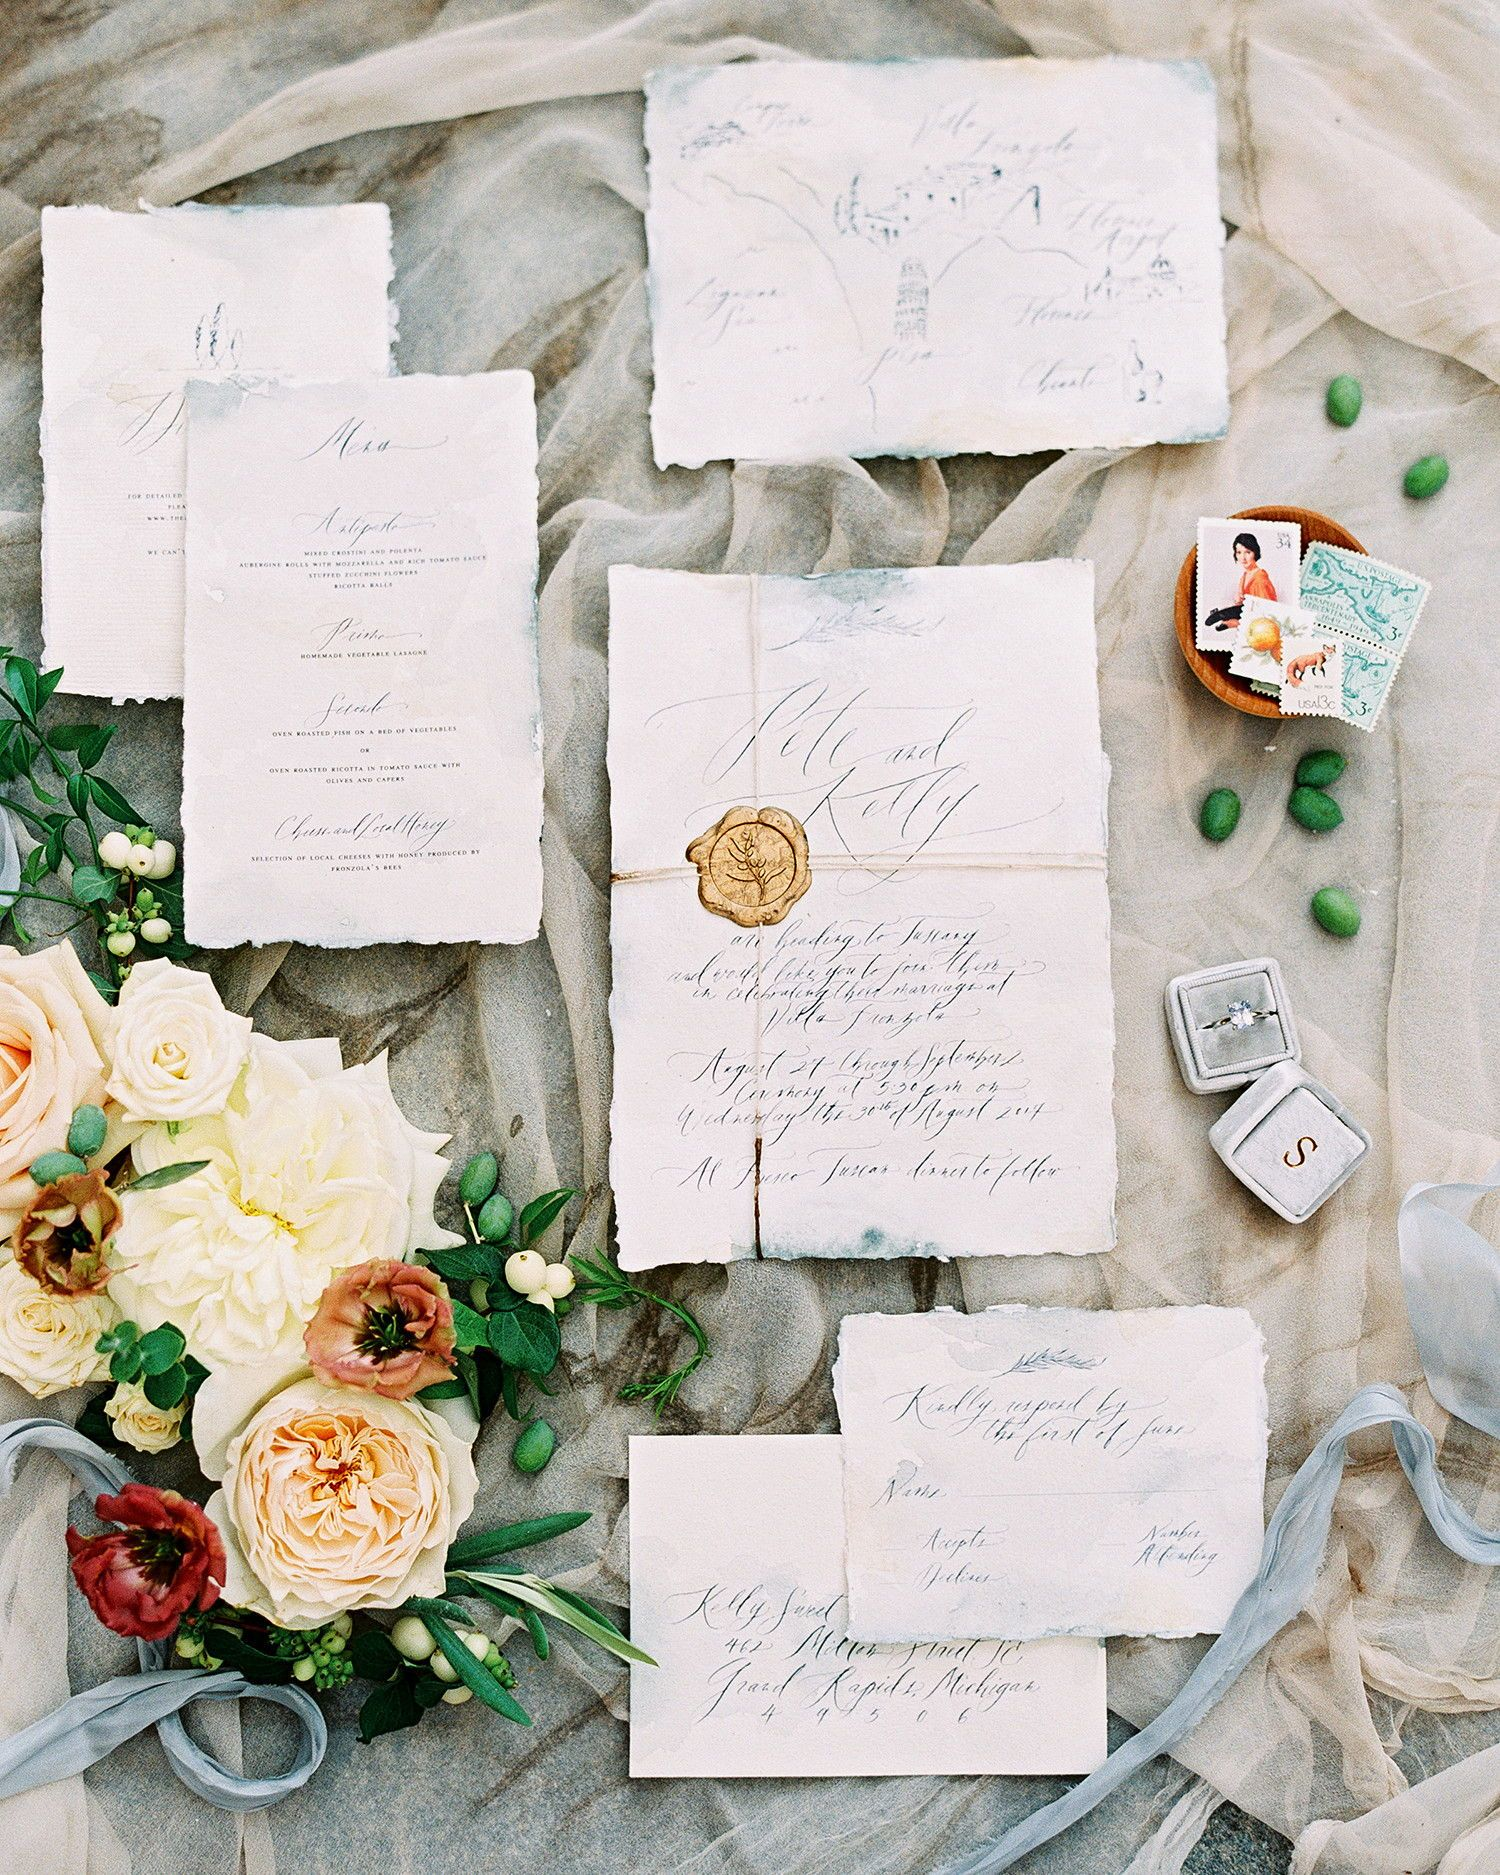 Intimate Wedding Invitation Wording: This Intimate Destination Wedding In Tuscany Had Just 16